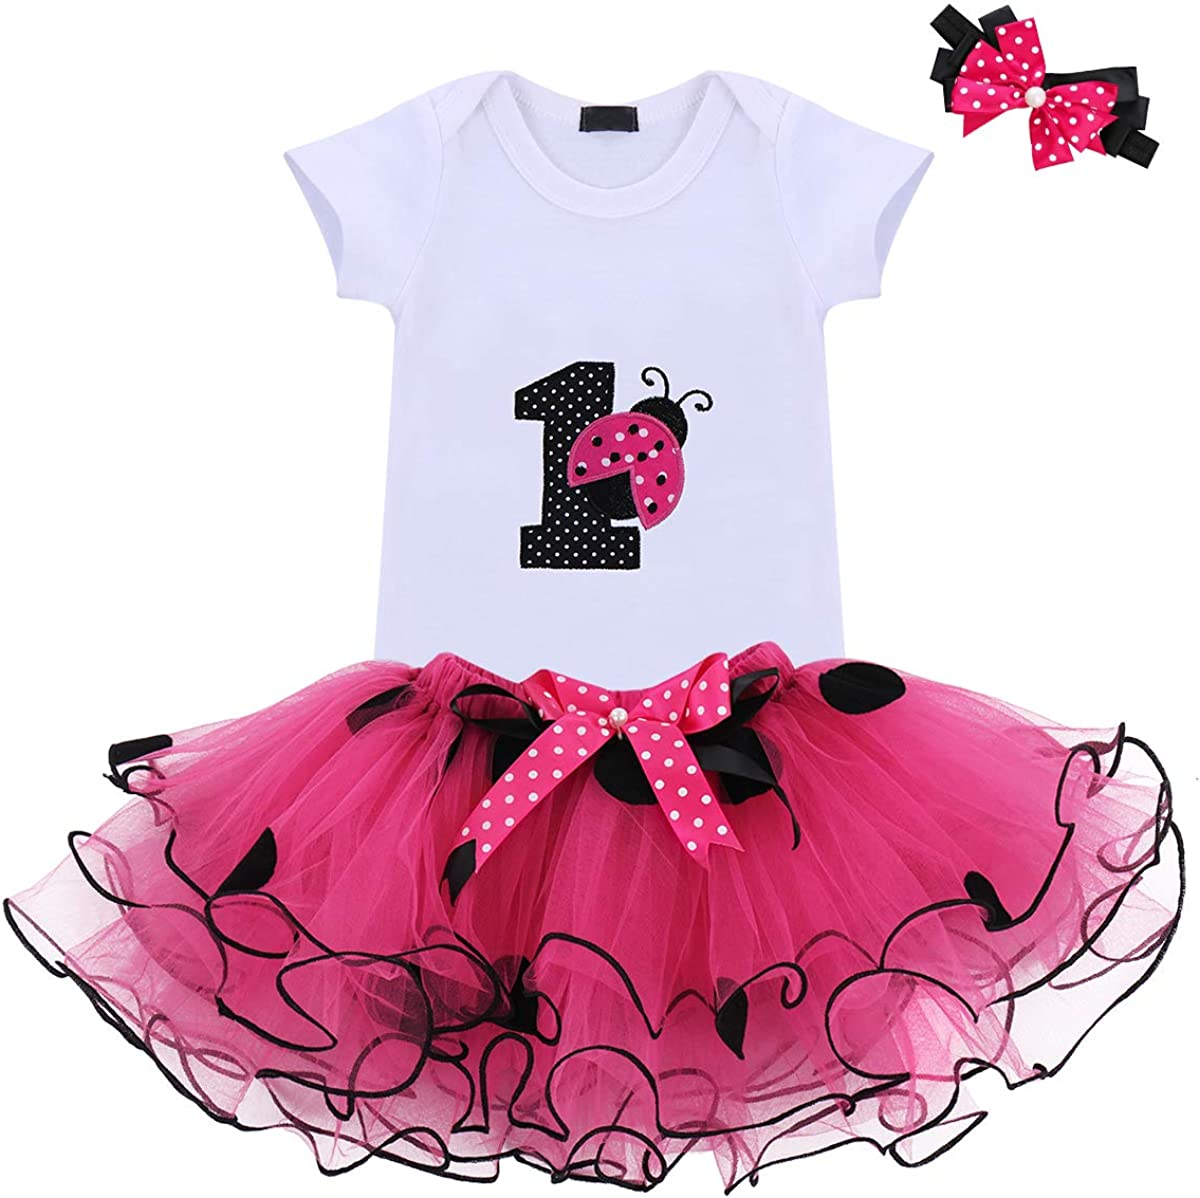 Baby Girls 1st Birthday Cake Smash 3pcs Outfits Set Cotton Romper Bodysuit+Tutu Dress+Flower Headband Princess Skirt Clothes